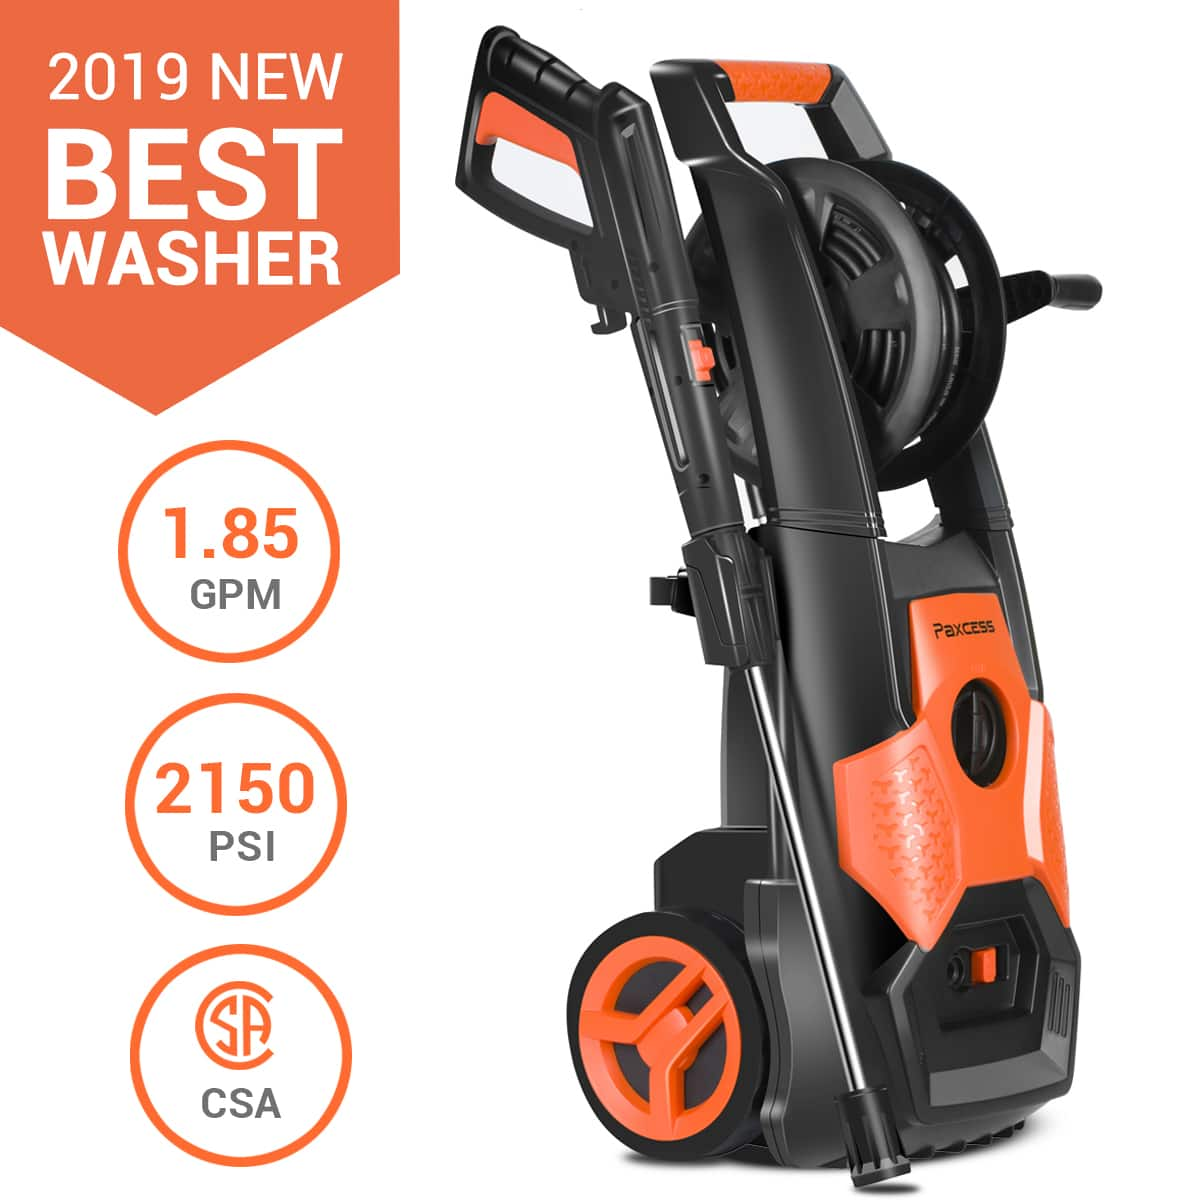 2150 PSI 1.85GPM Electric Pressure Washer $149.99+Free Shipping